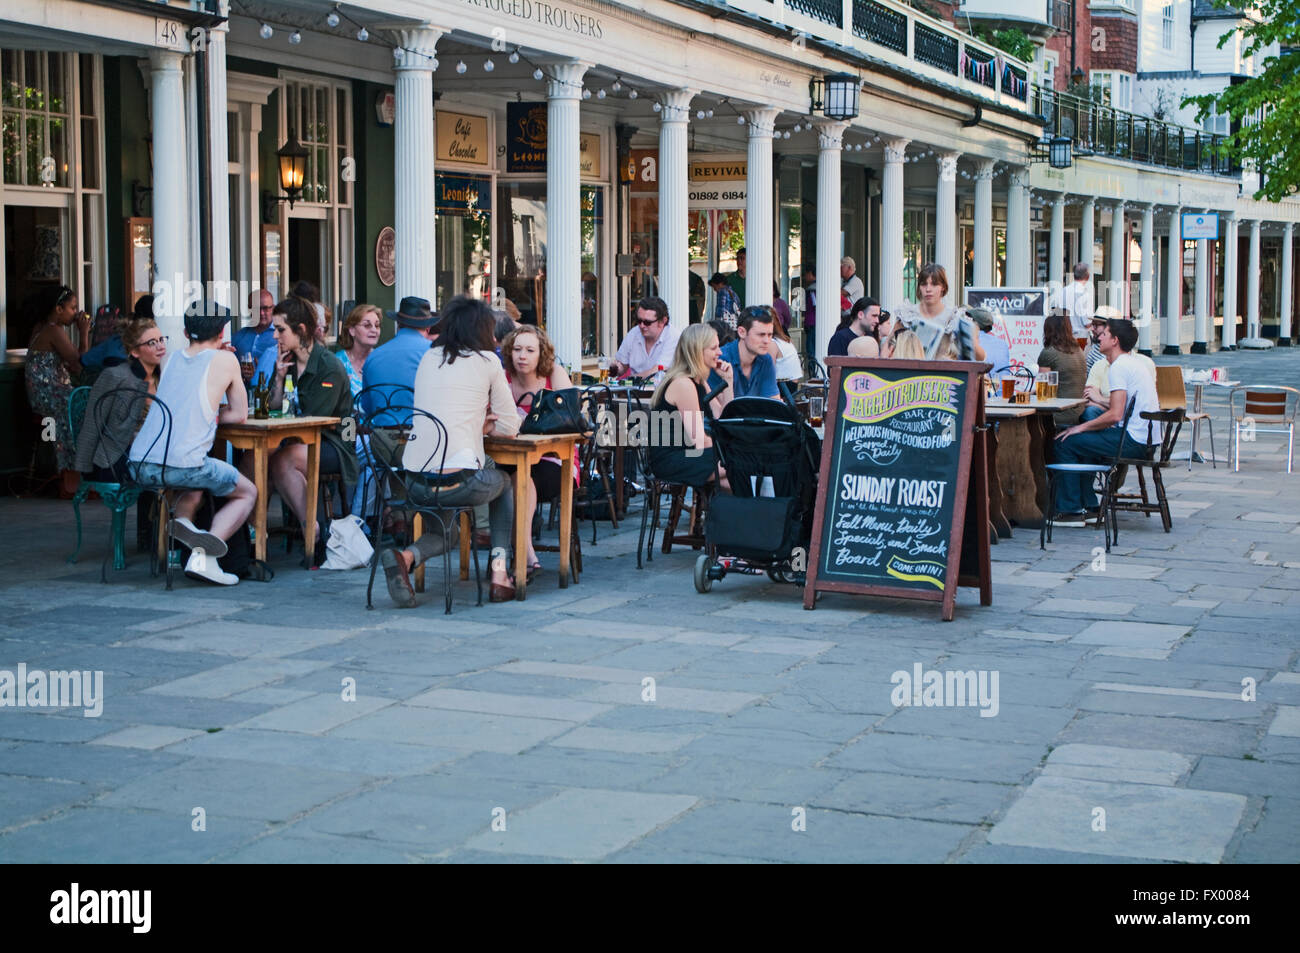 Pantiles, Cafe, Royal Tonbridge Wells, Kent, England, - Stock Image